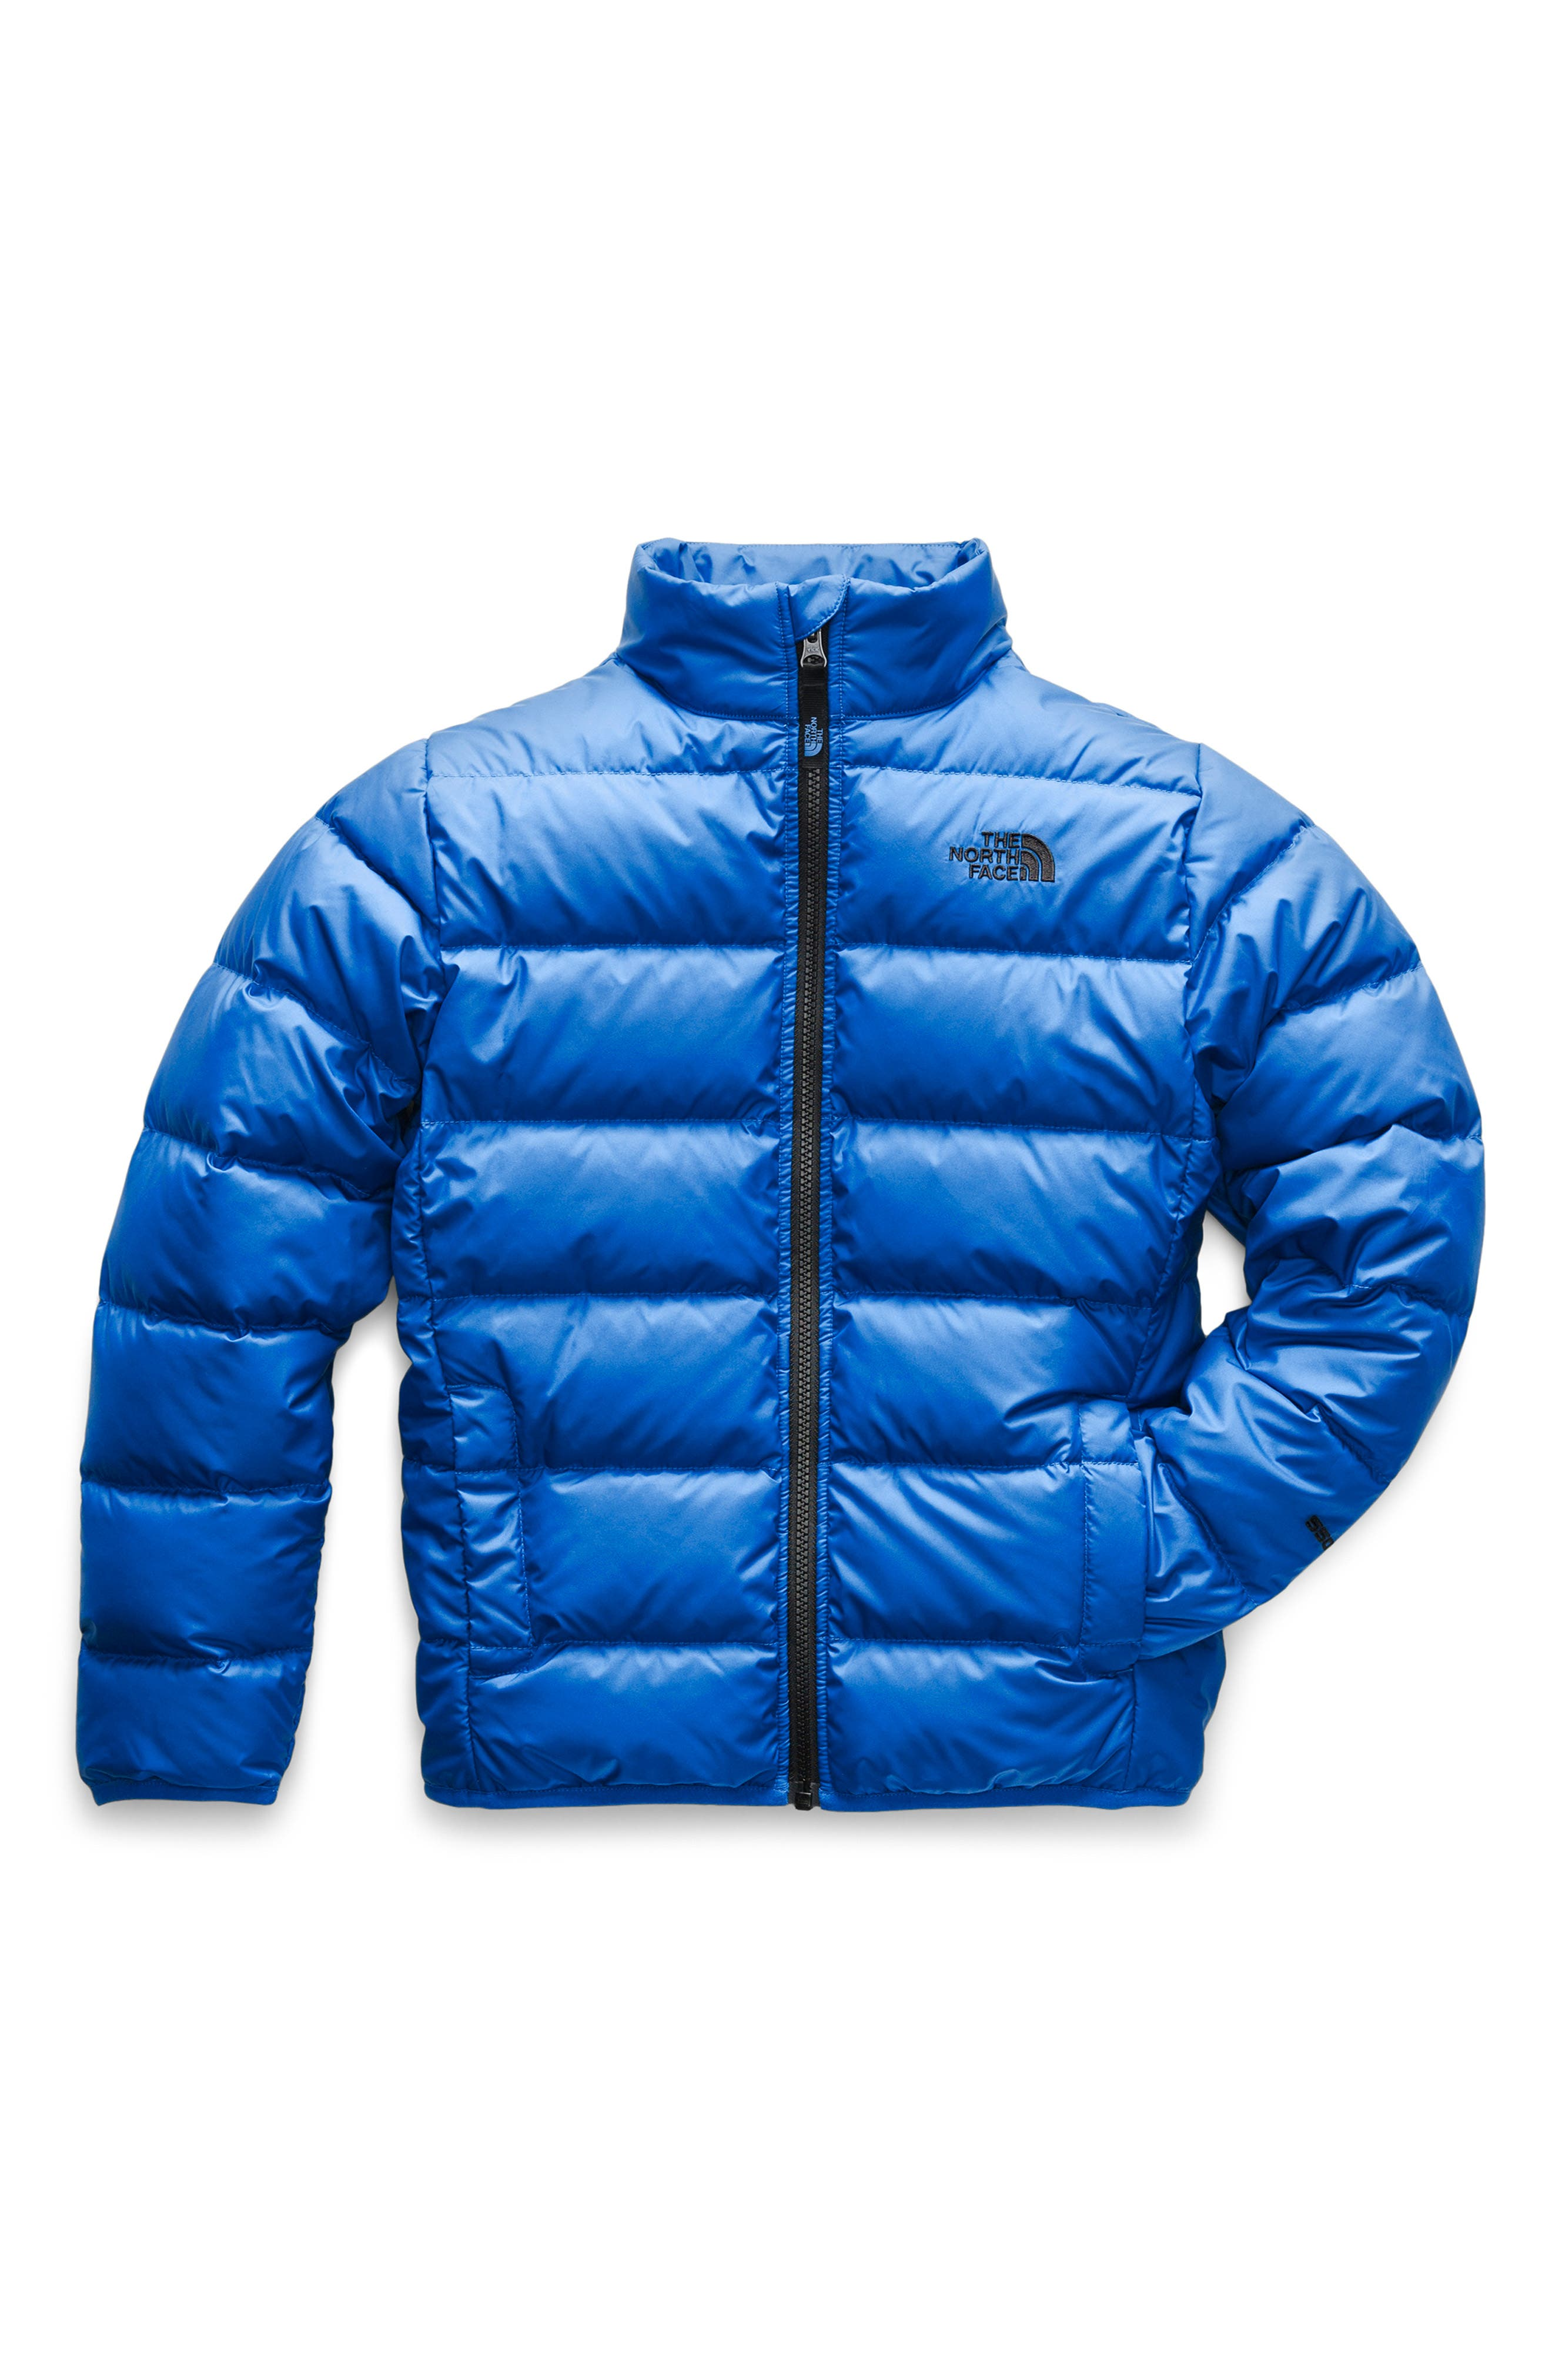 Andes Water Repellent 550-Fill Power Down Jacket,                         Main,                         color, 403